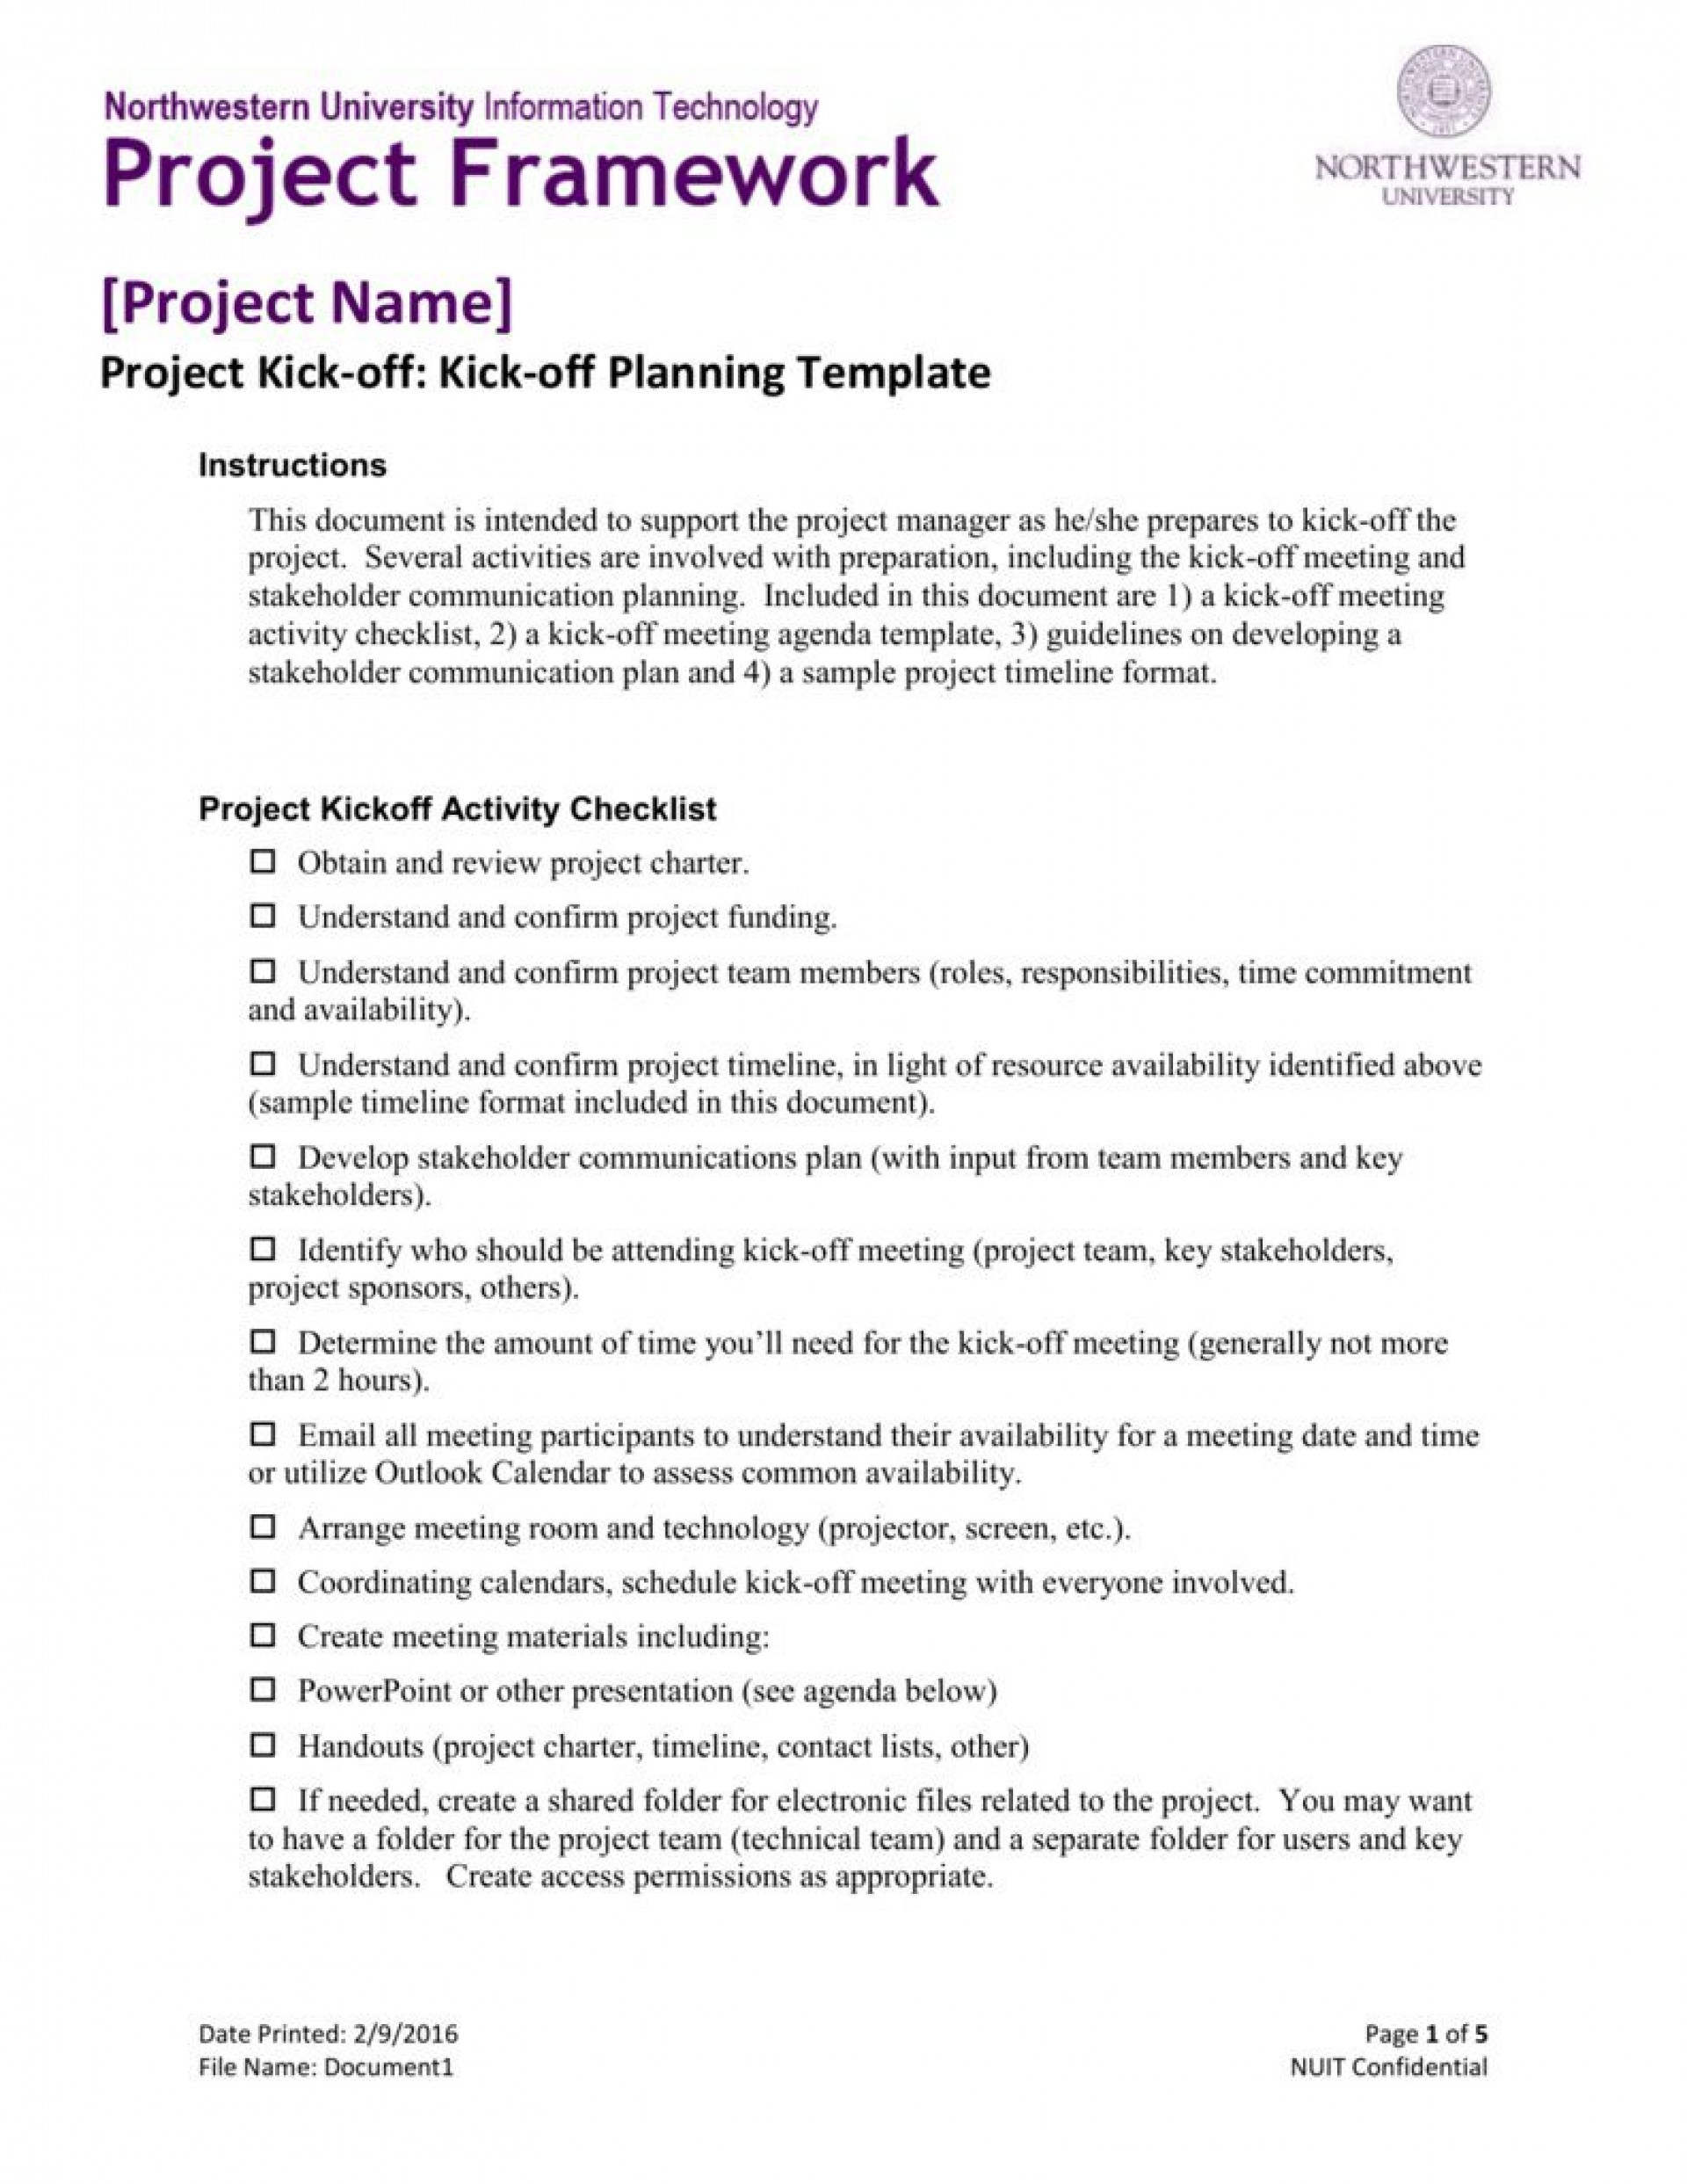 005 Breathtaking Project Kickoff Meeting Template High Definition  Management Agenda Construction Doc Email1920